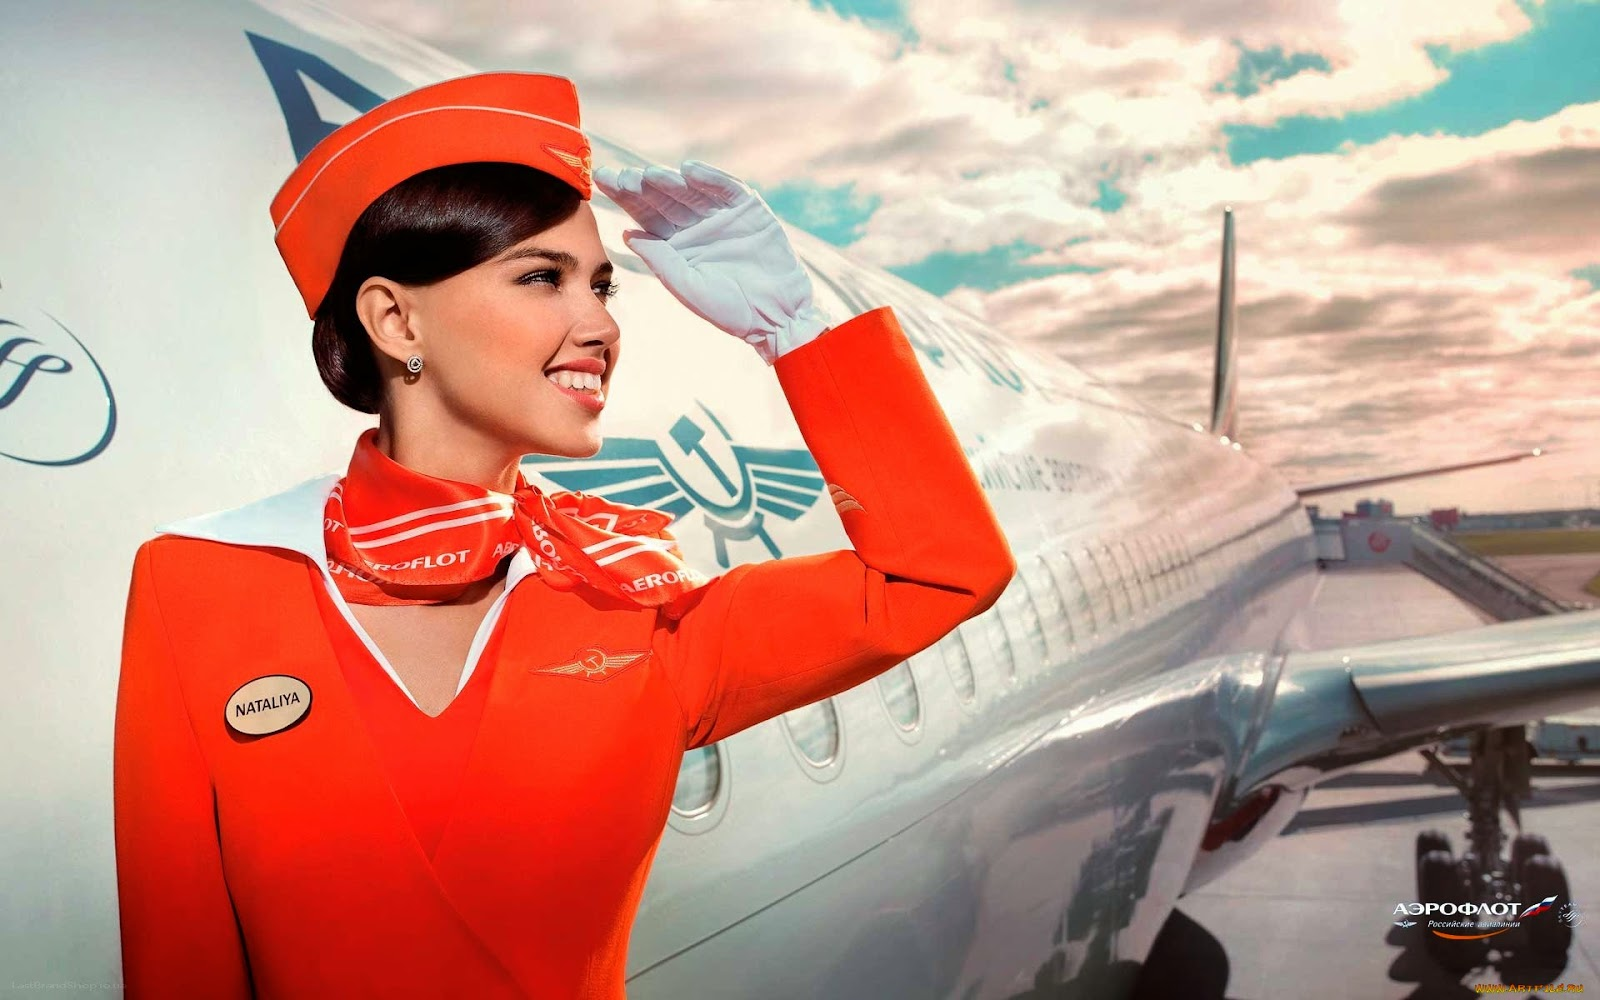 Air hotess cabin crew flight attendant dangling in plane 7